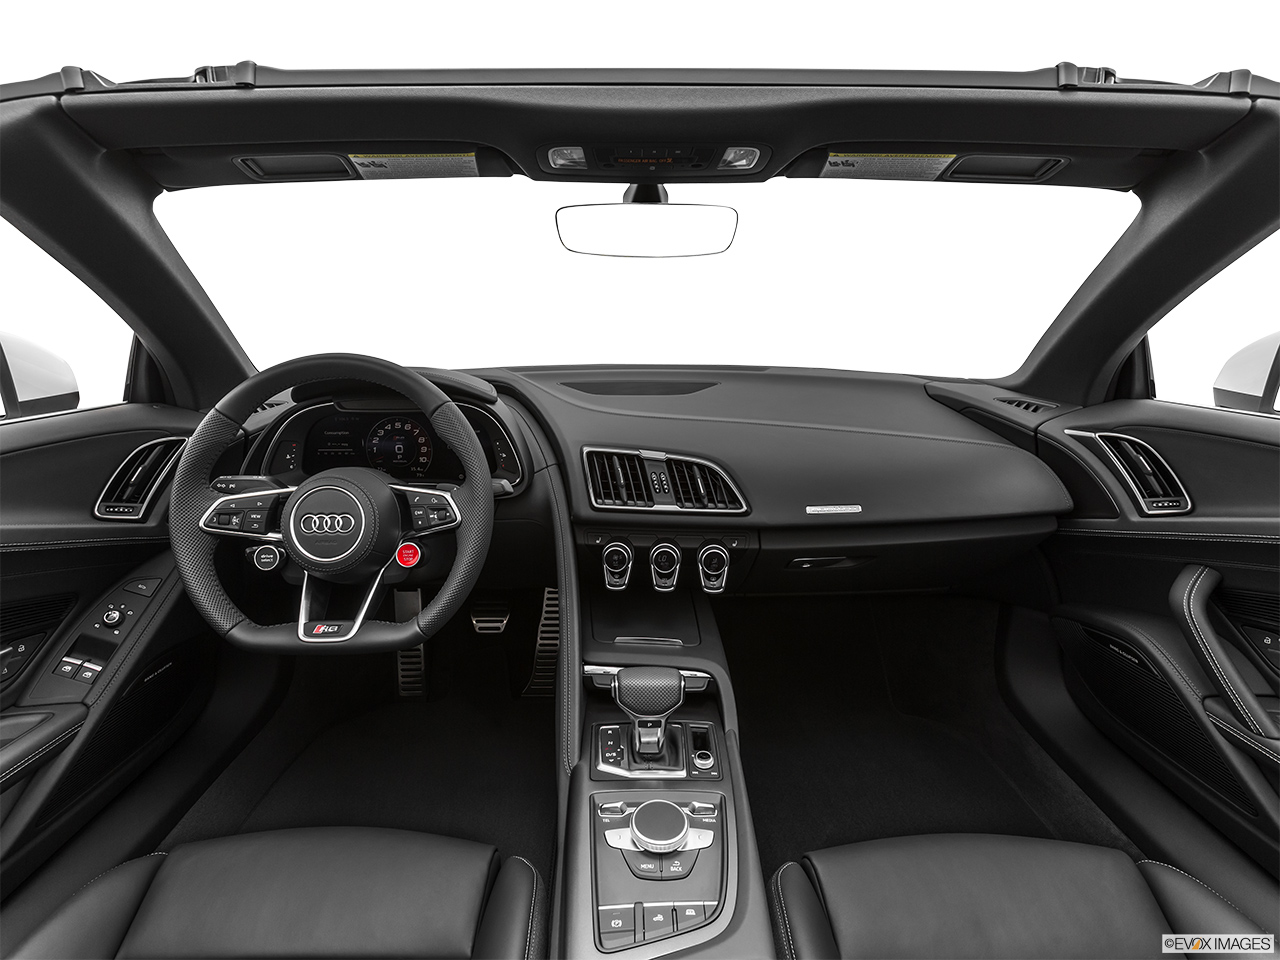 2020 Audi R8 Spyder V10 Centered wide dash shot